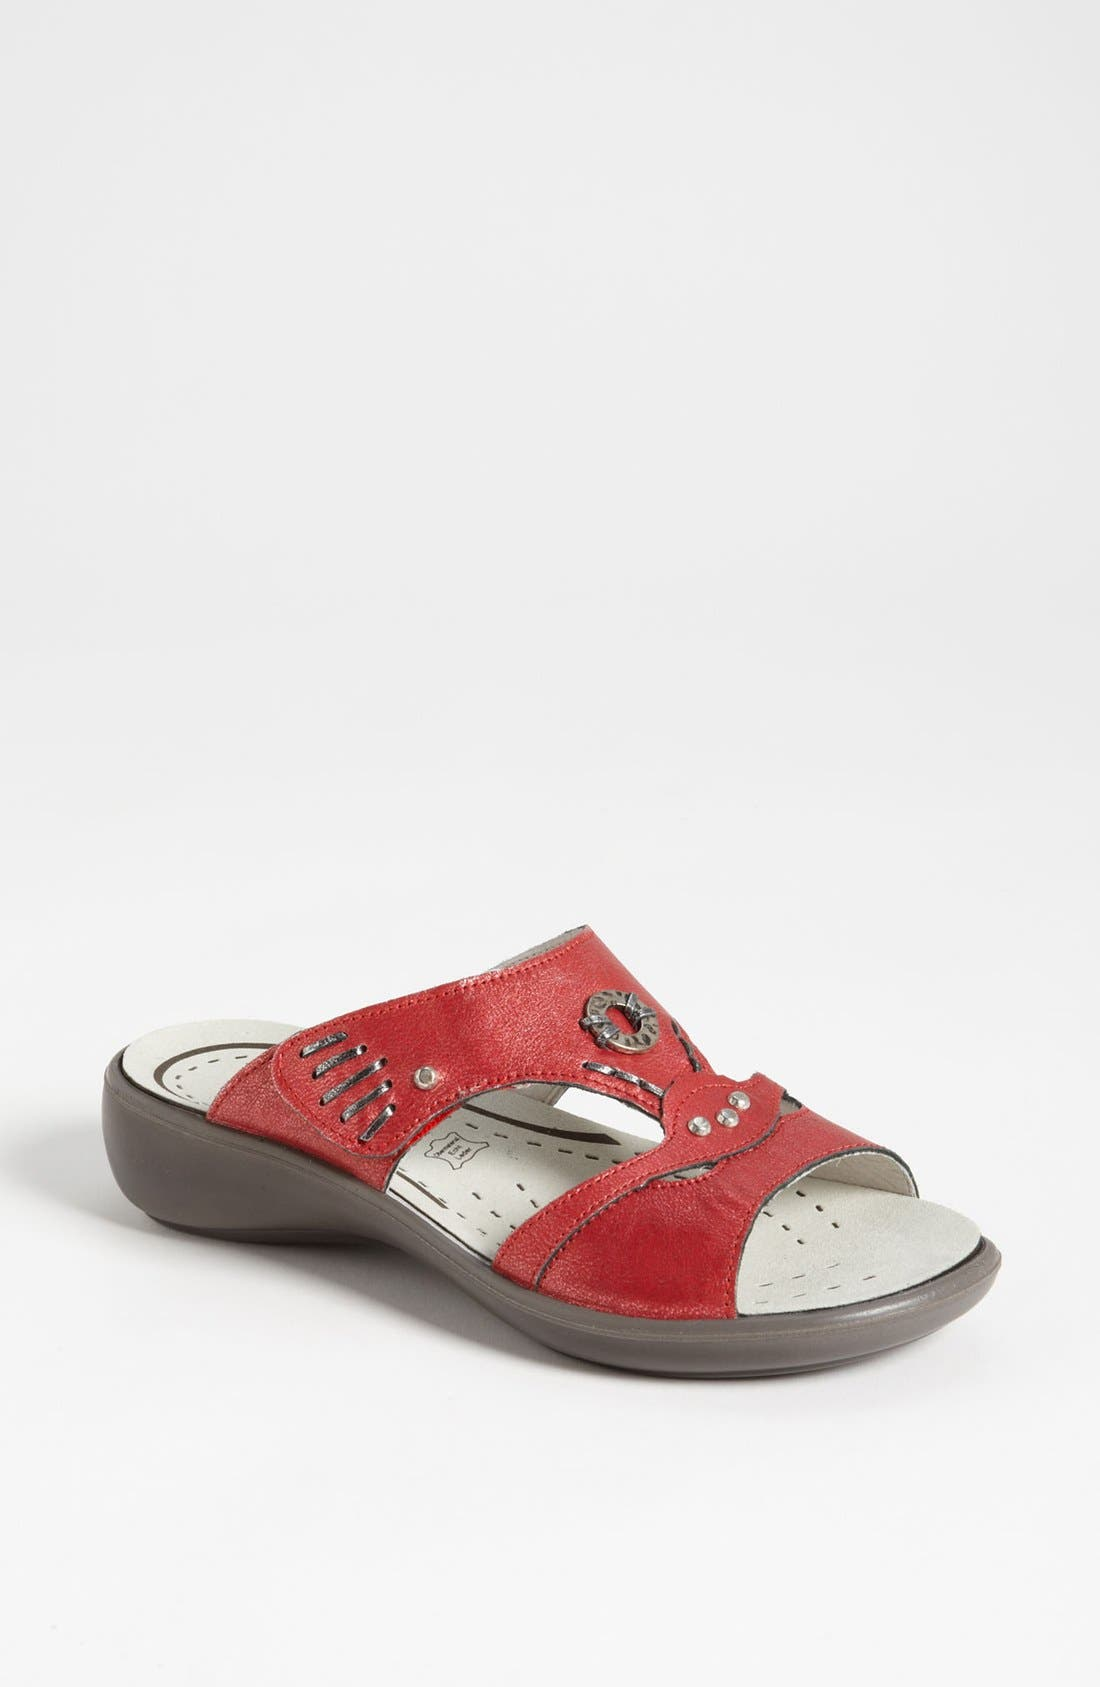 Alternate Image 1 Selected - Romika® 'Ibiza 36' Sandal